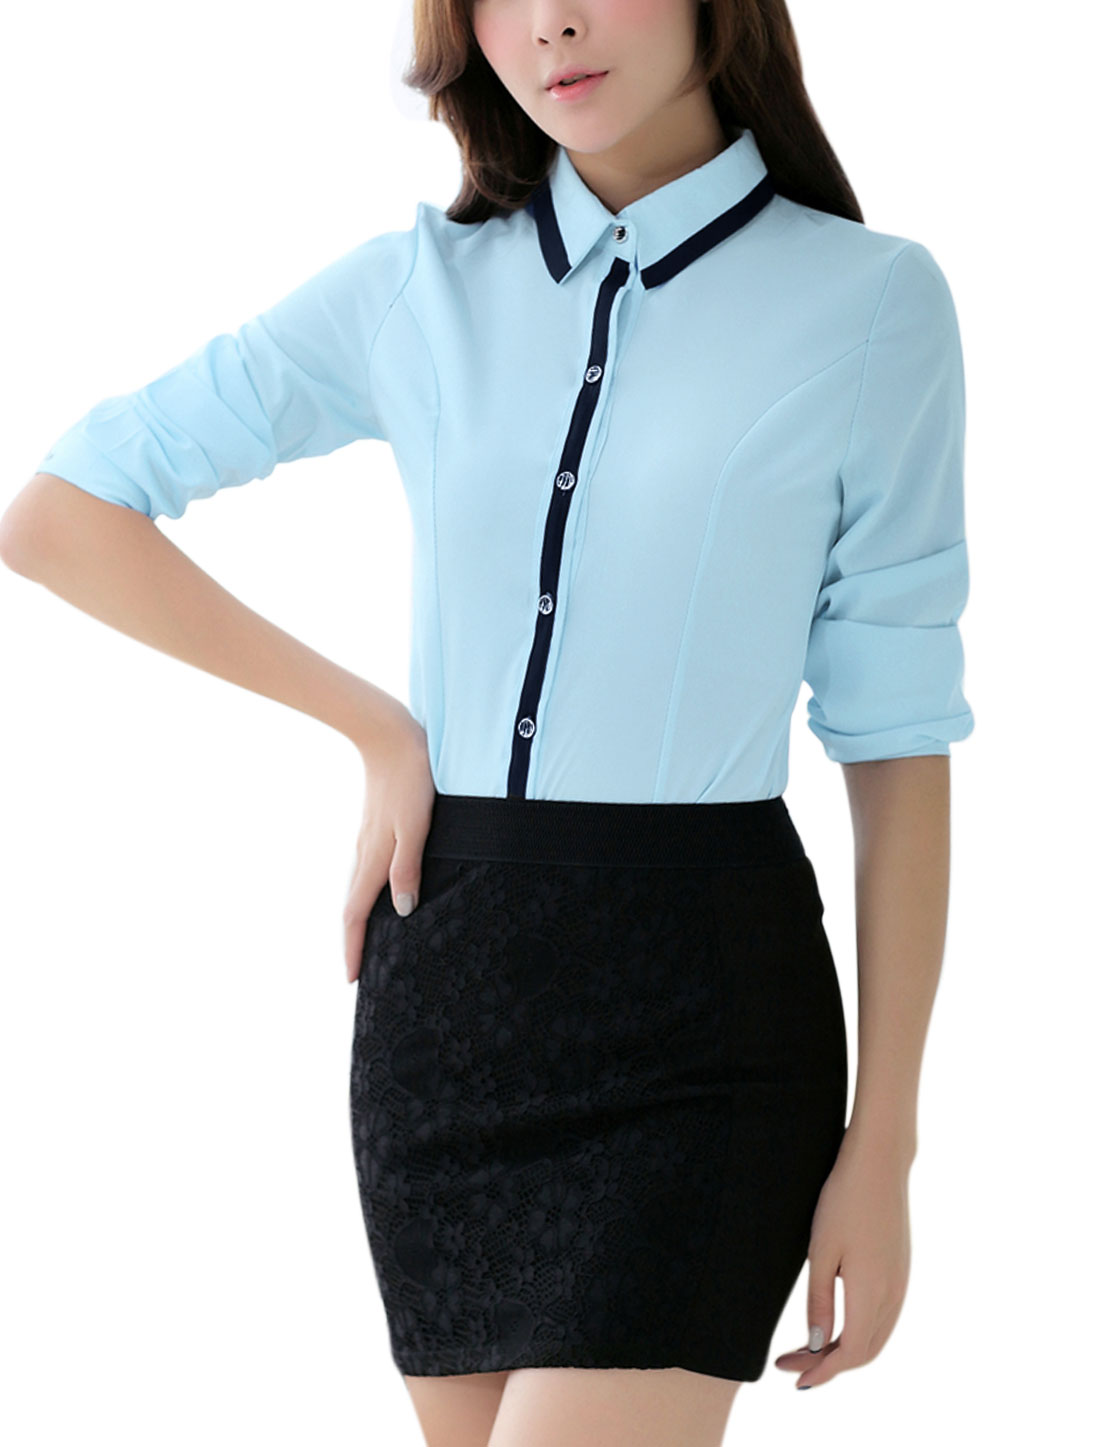 Single Breasted Button Cuffs Light Blue Shirt for Women M